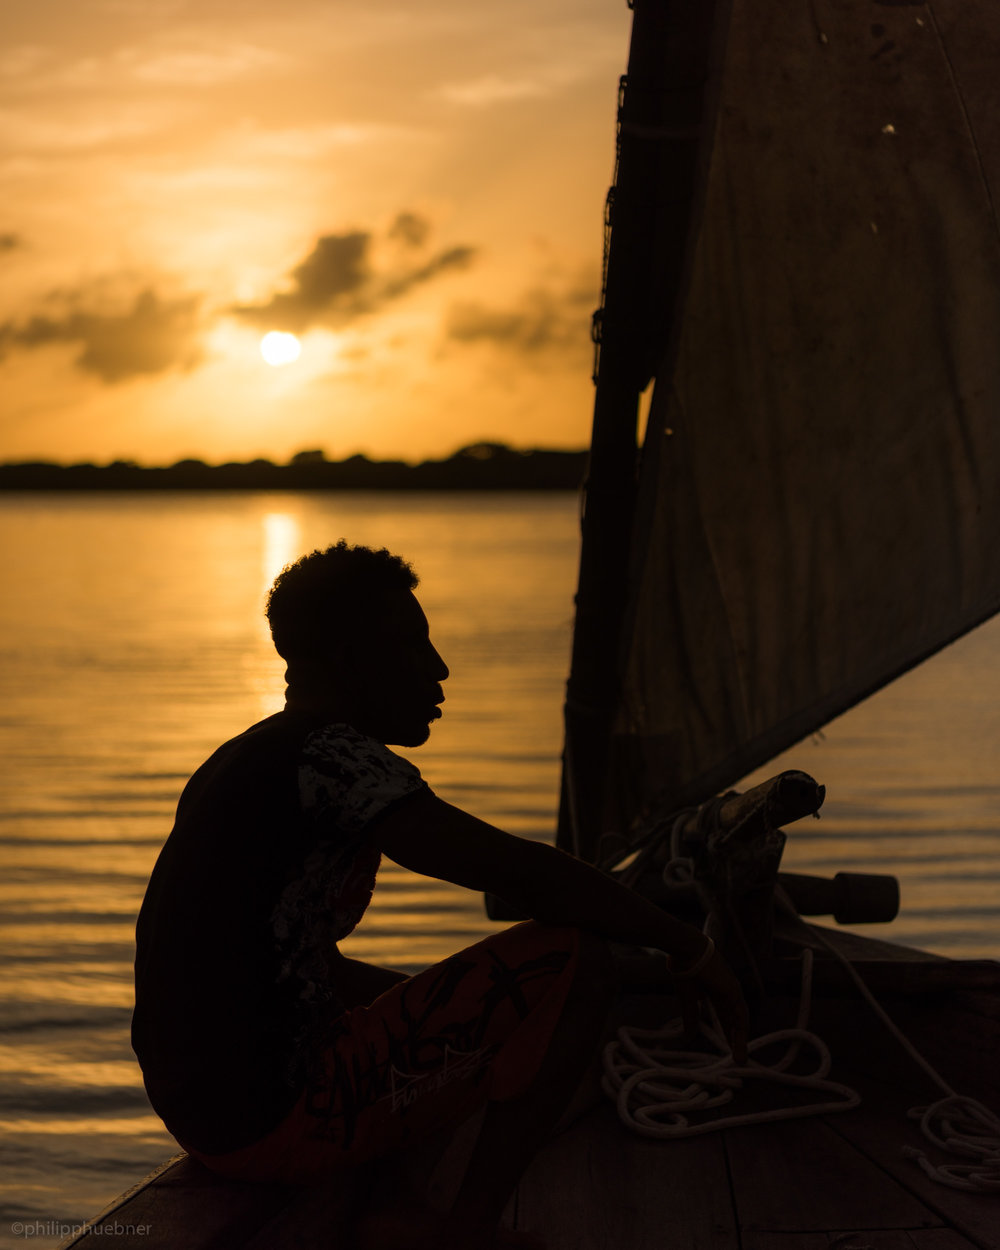 that golden moment - sunset cruise on a traditional dhow - manda island